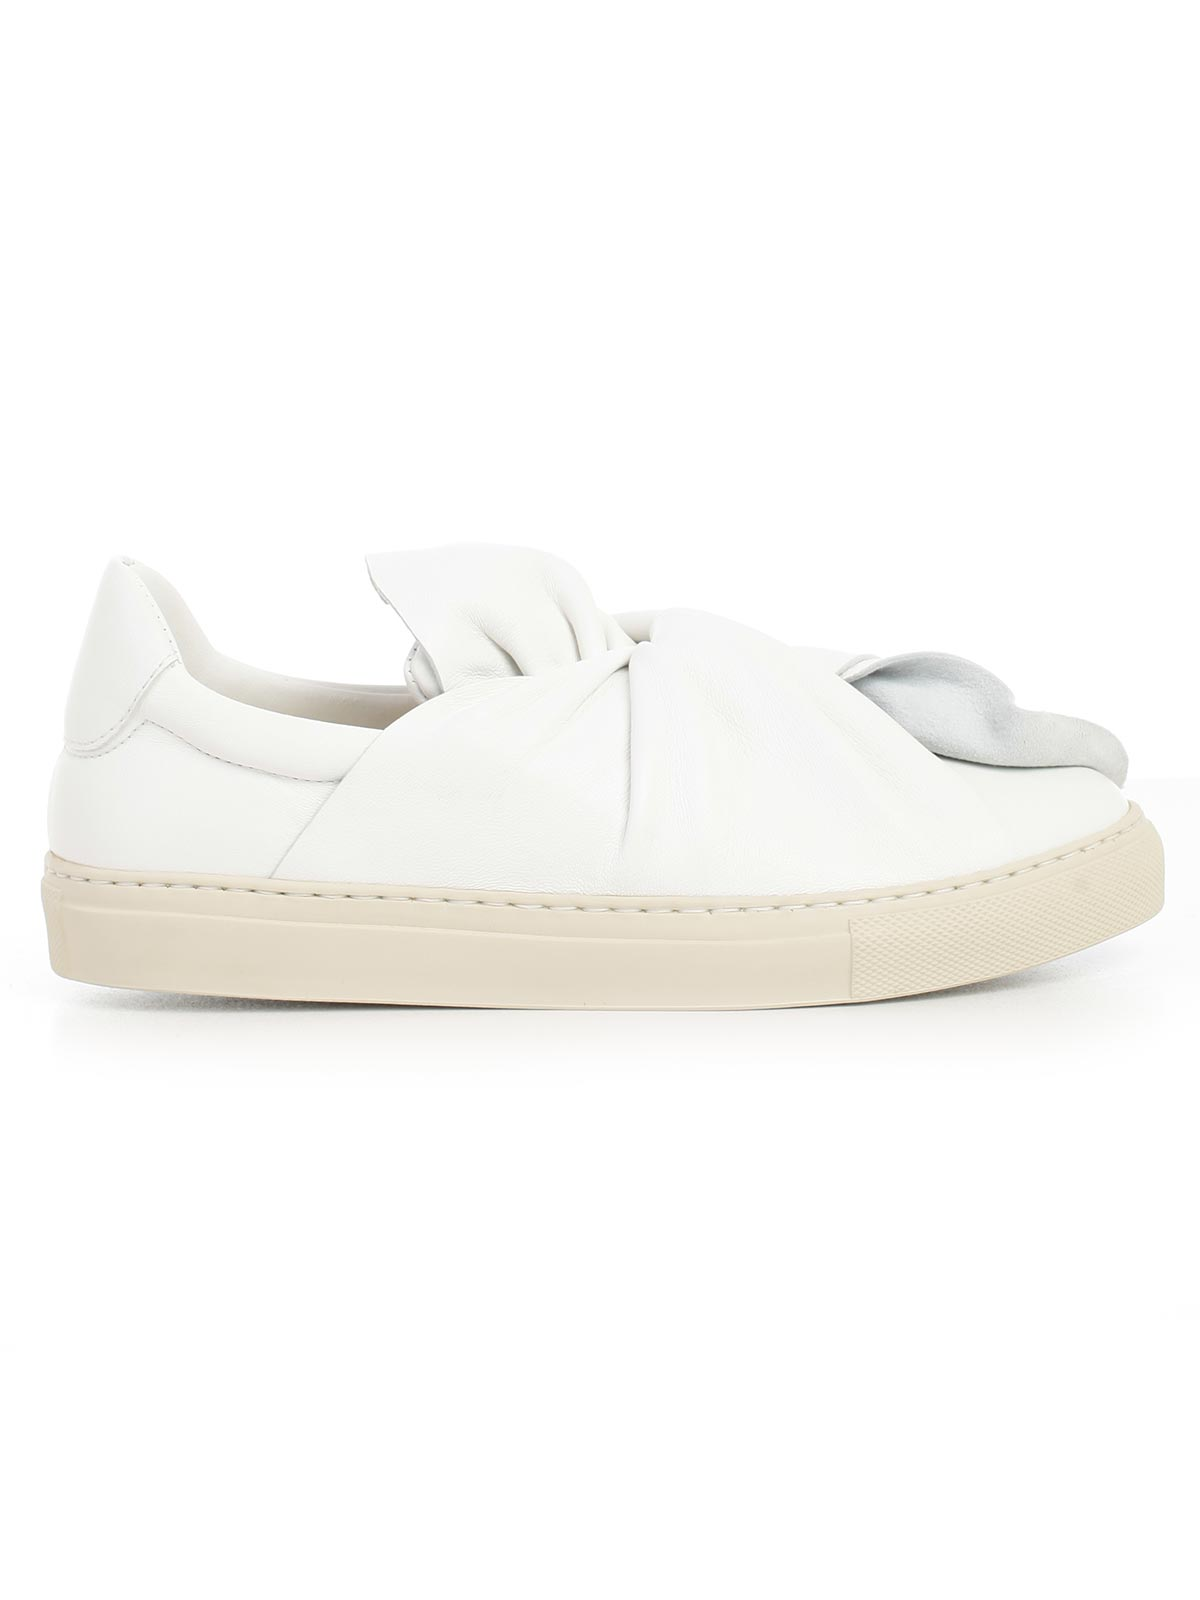 Picture of PORTS 1961 FOOTWEAR SCARPA SLIP ON